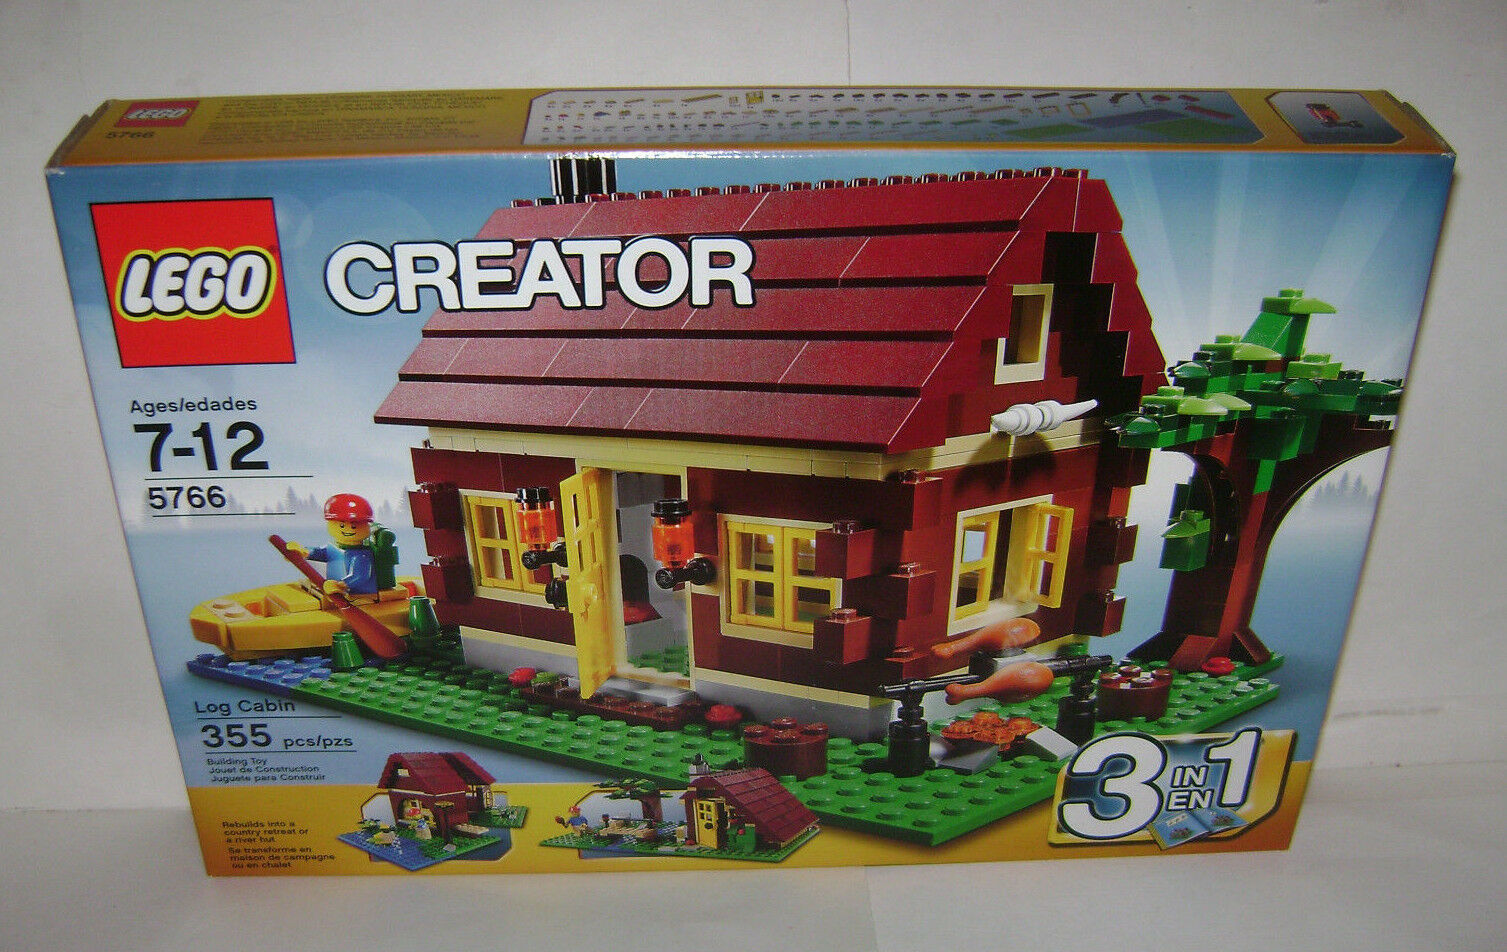 NEW 5766 Lego CREATOR Log Cabin 3 in 1 Building Toy SEALED BOX RETIrosso A